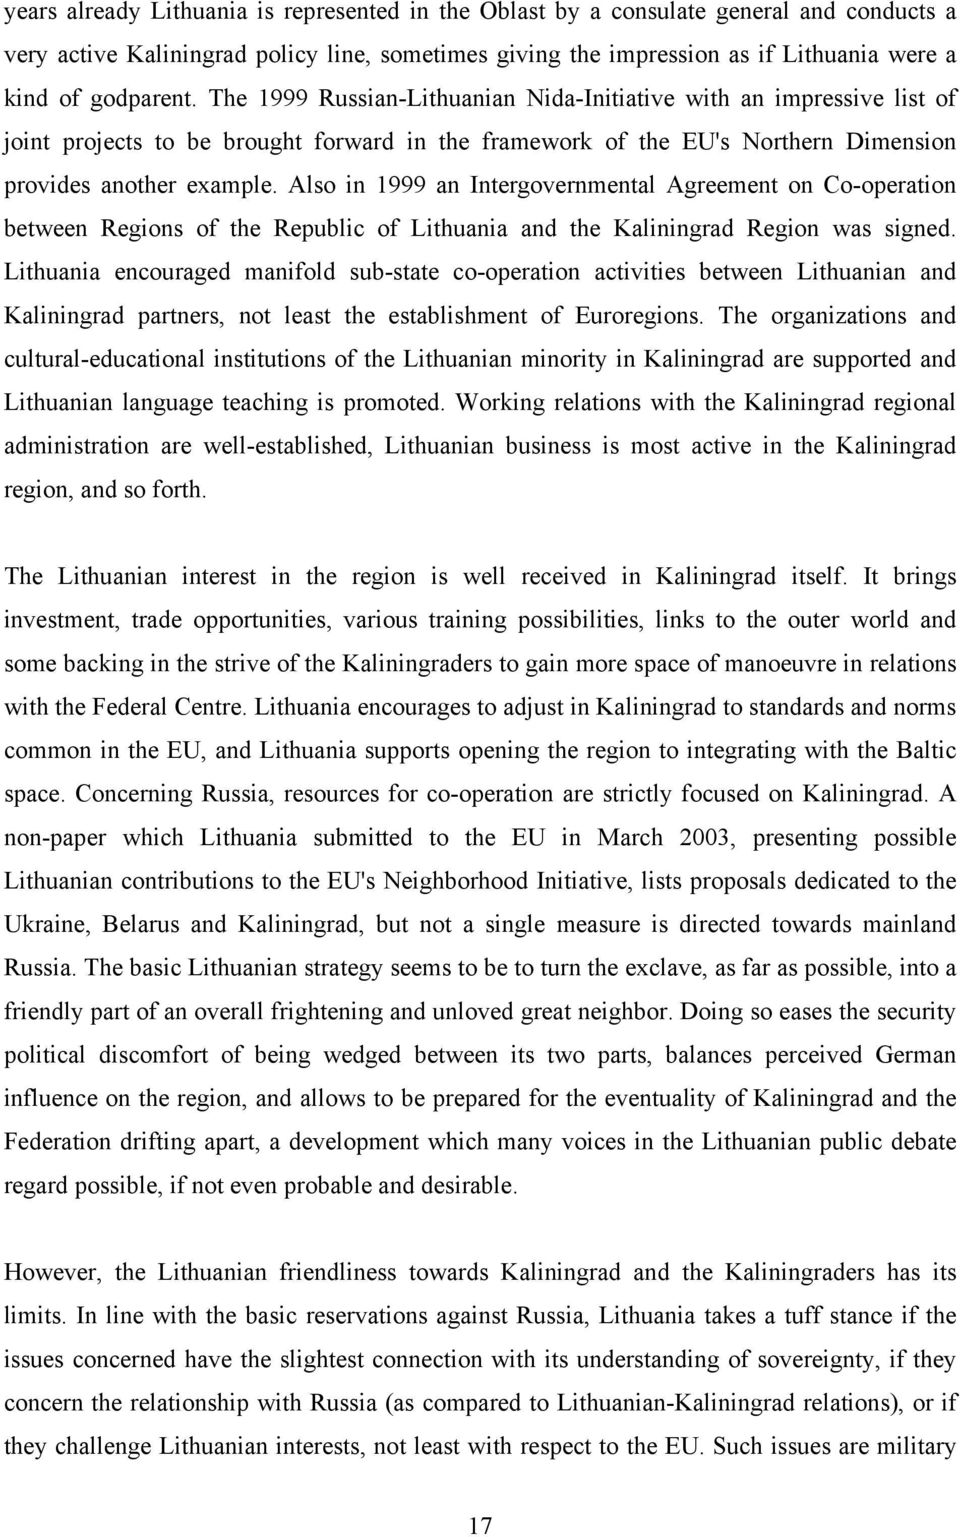 Also in 1999 an Intergovernmental Agreement on Co-operation between Regions of the Republic of Lithuania and the Kaliningrad Region was signed.